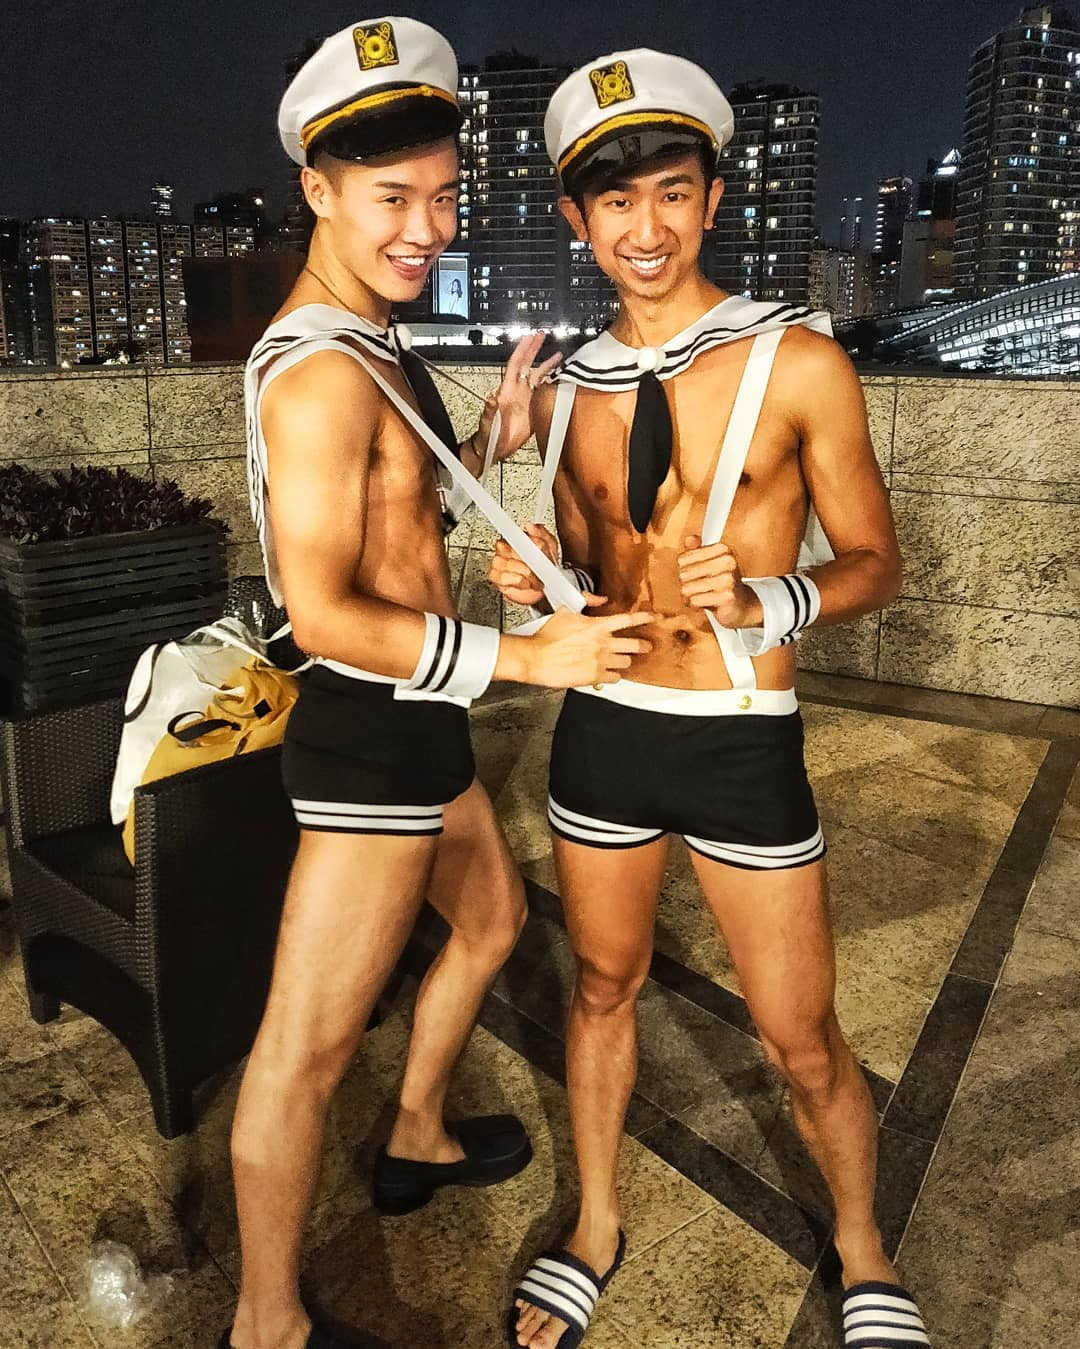 Sexy captains for Best Halloween Costumes For Men